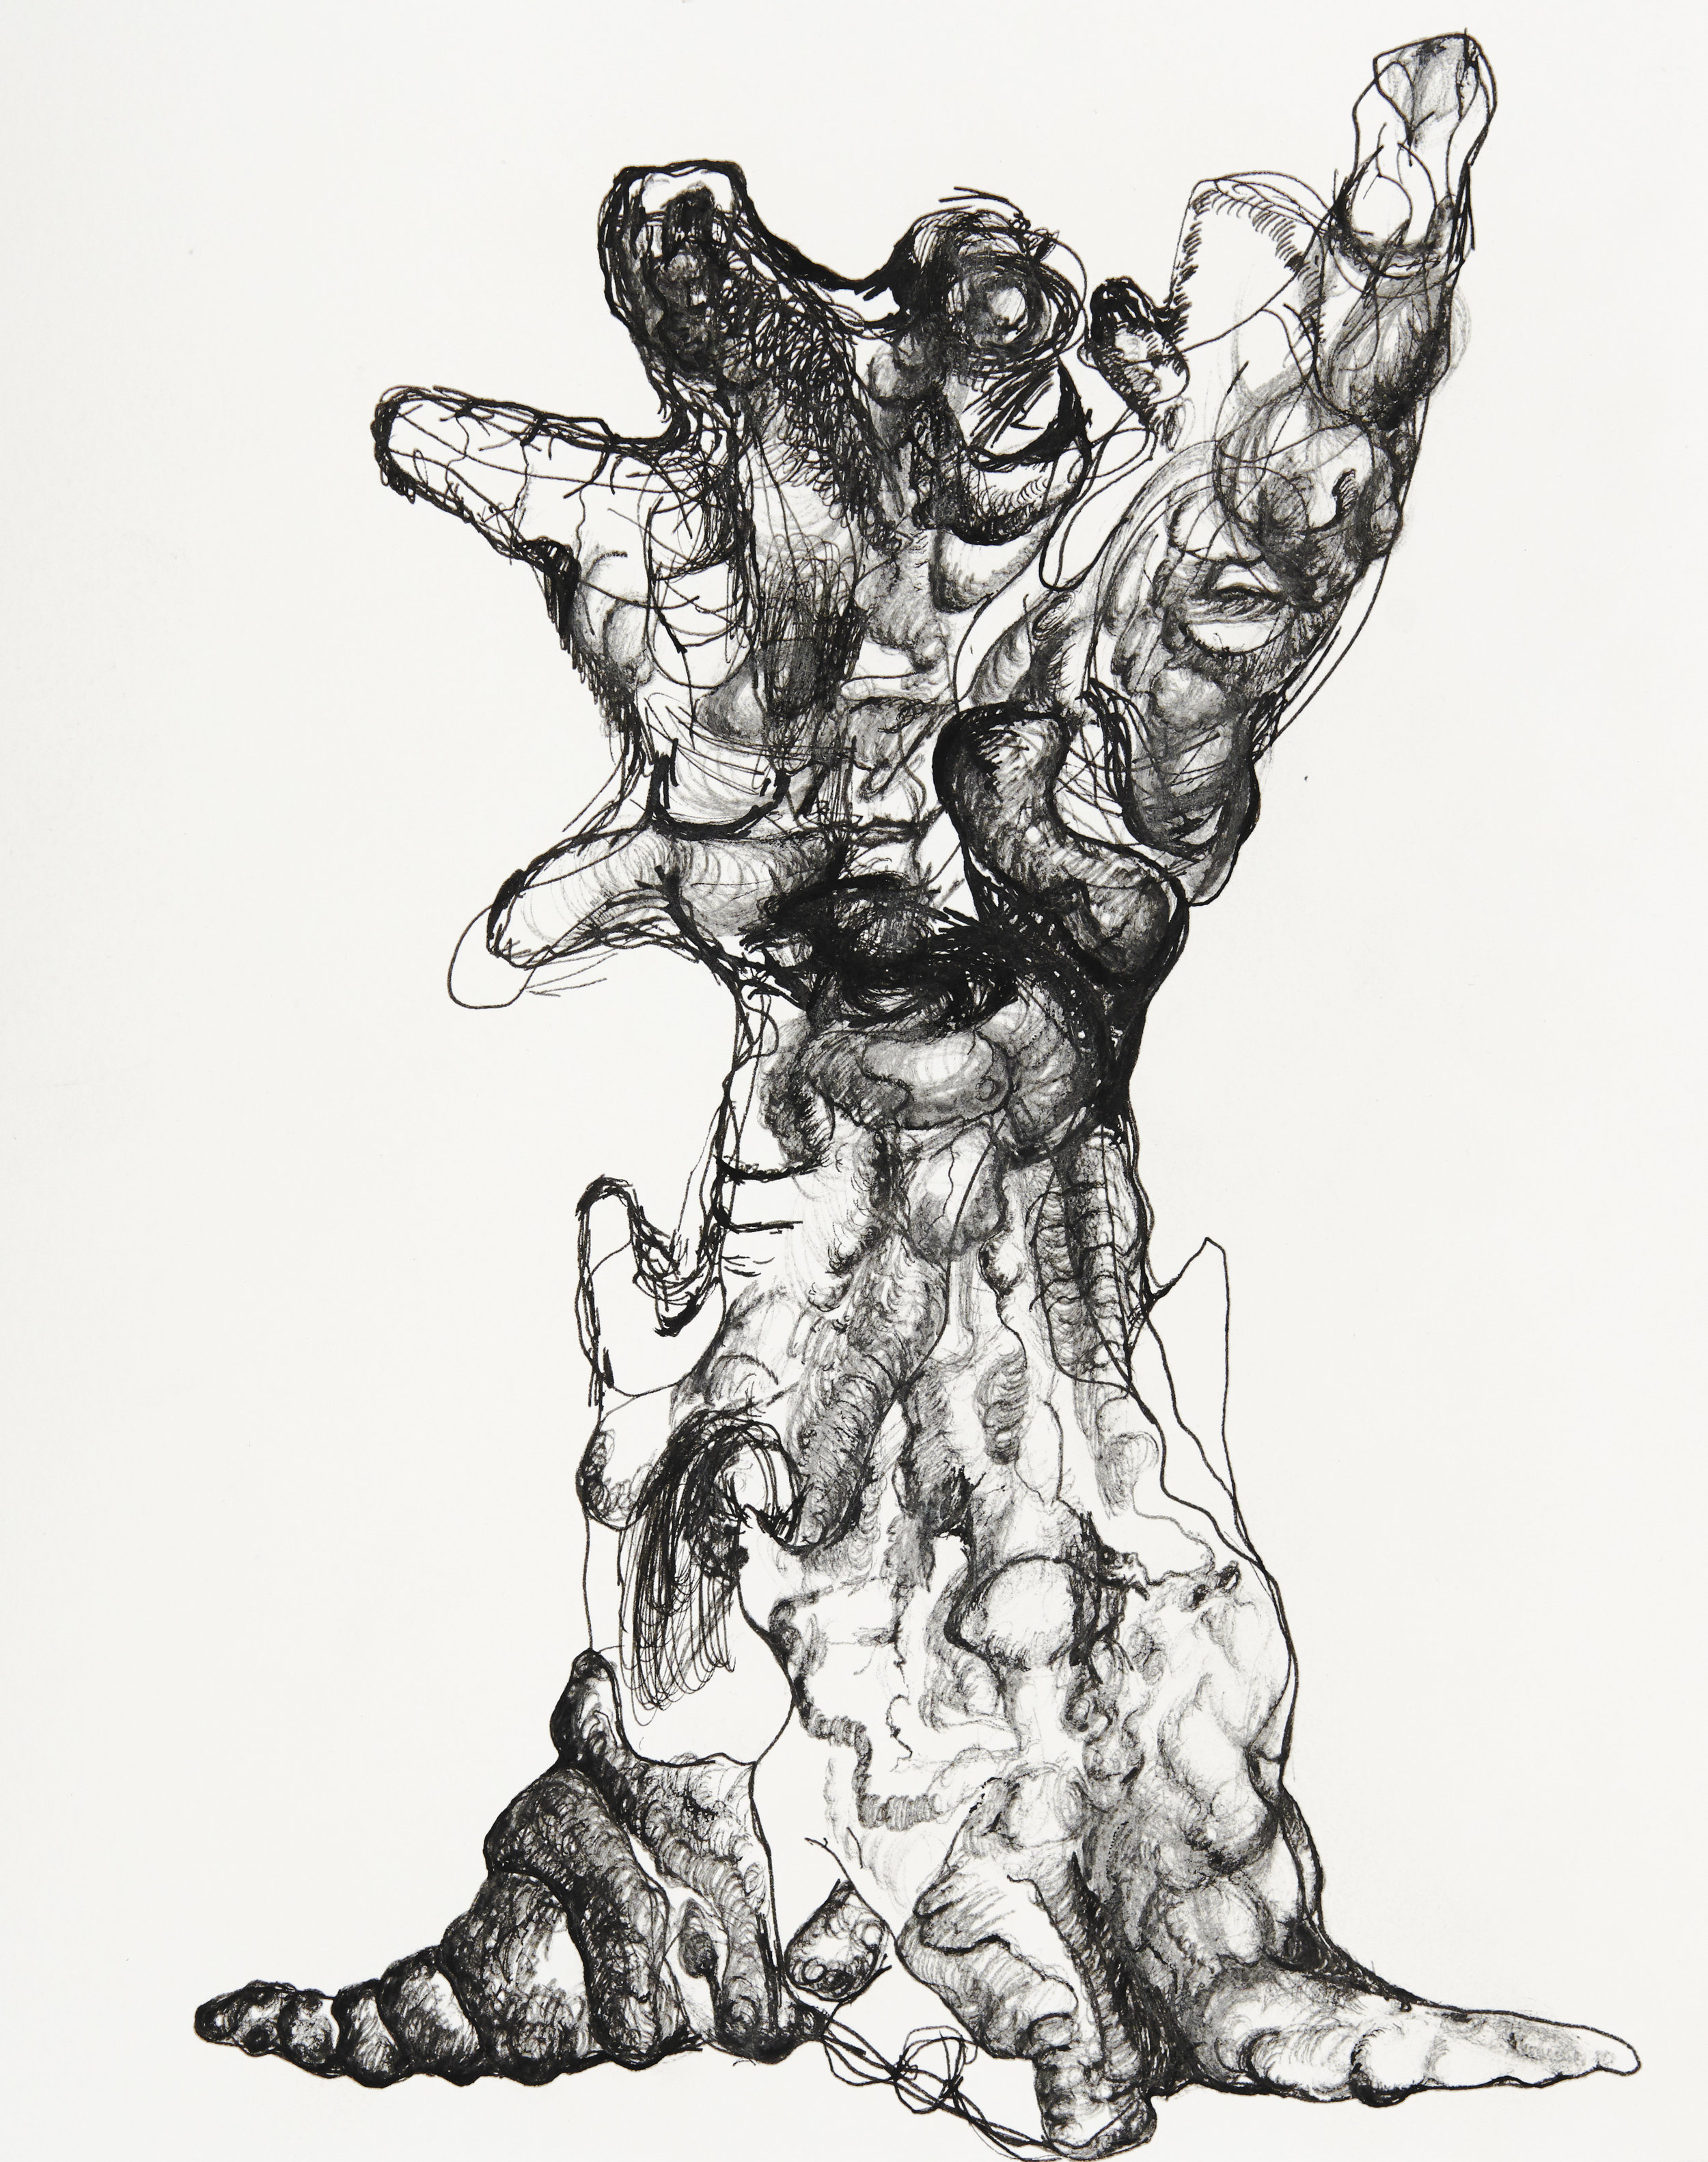 Mutant tree study, 2018                                                                                                        24 x 30 cm, Ink pen on paper